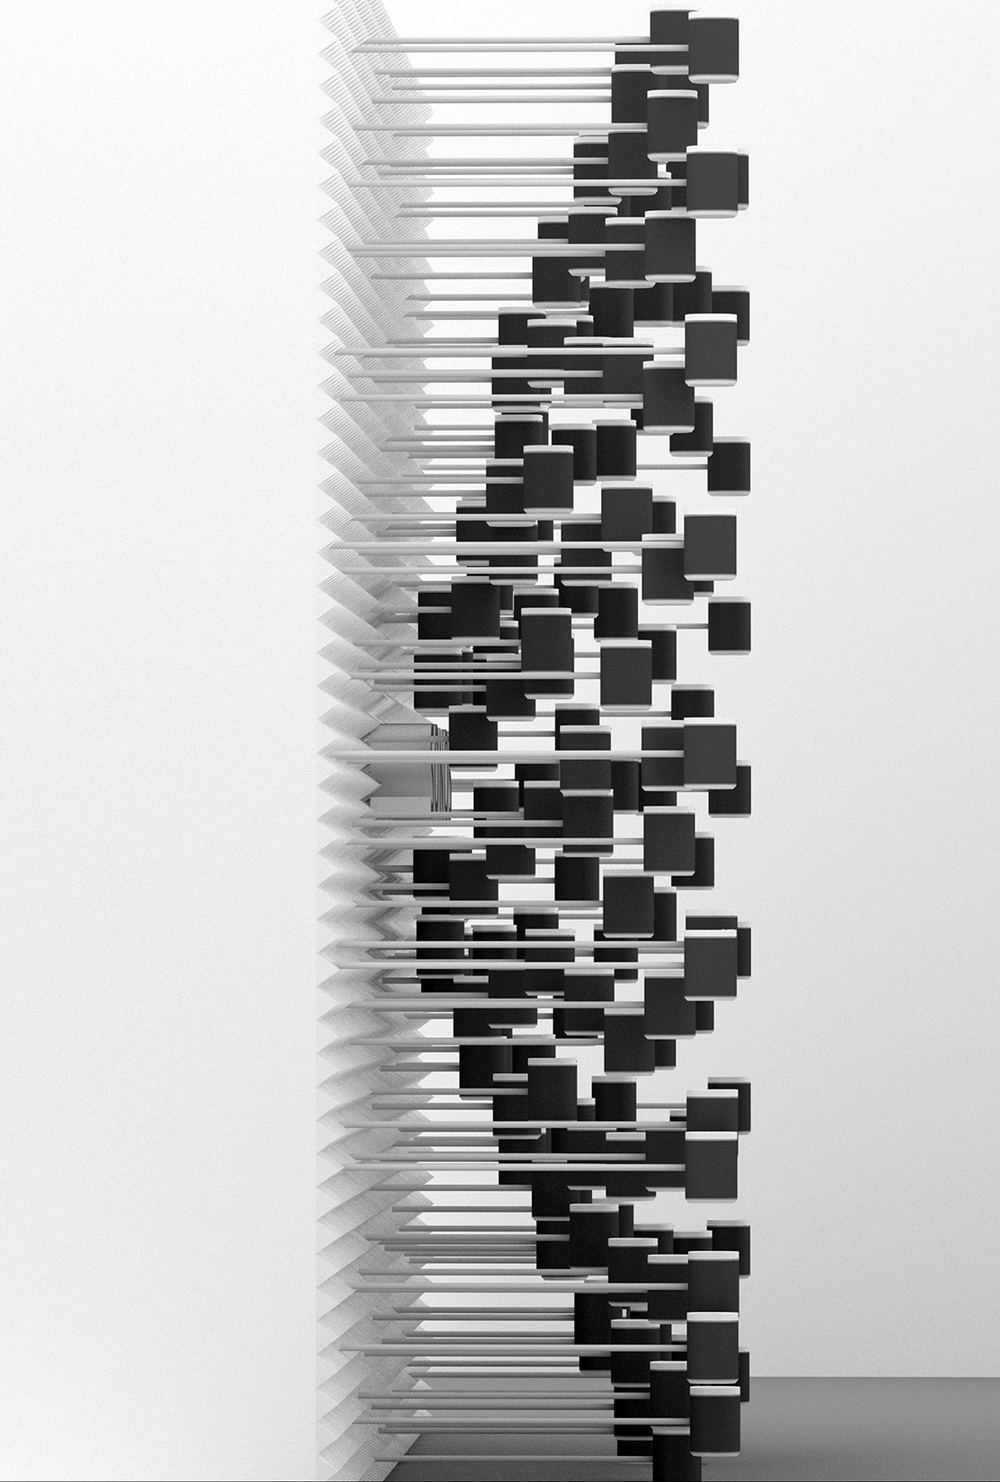 Sonos_4_flat wall_side view.jpg